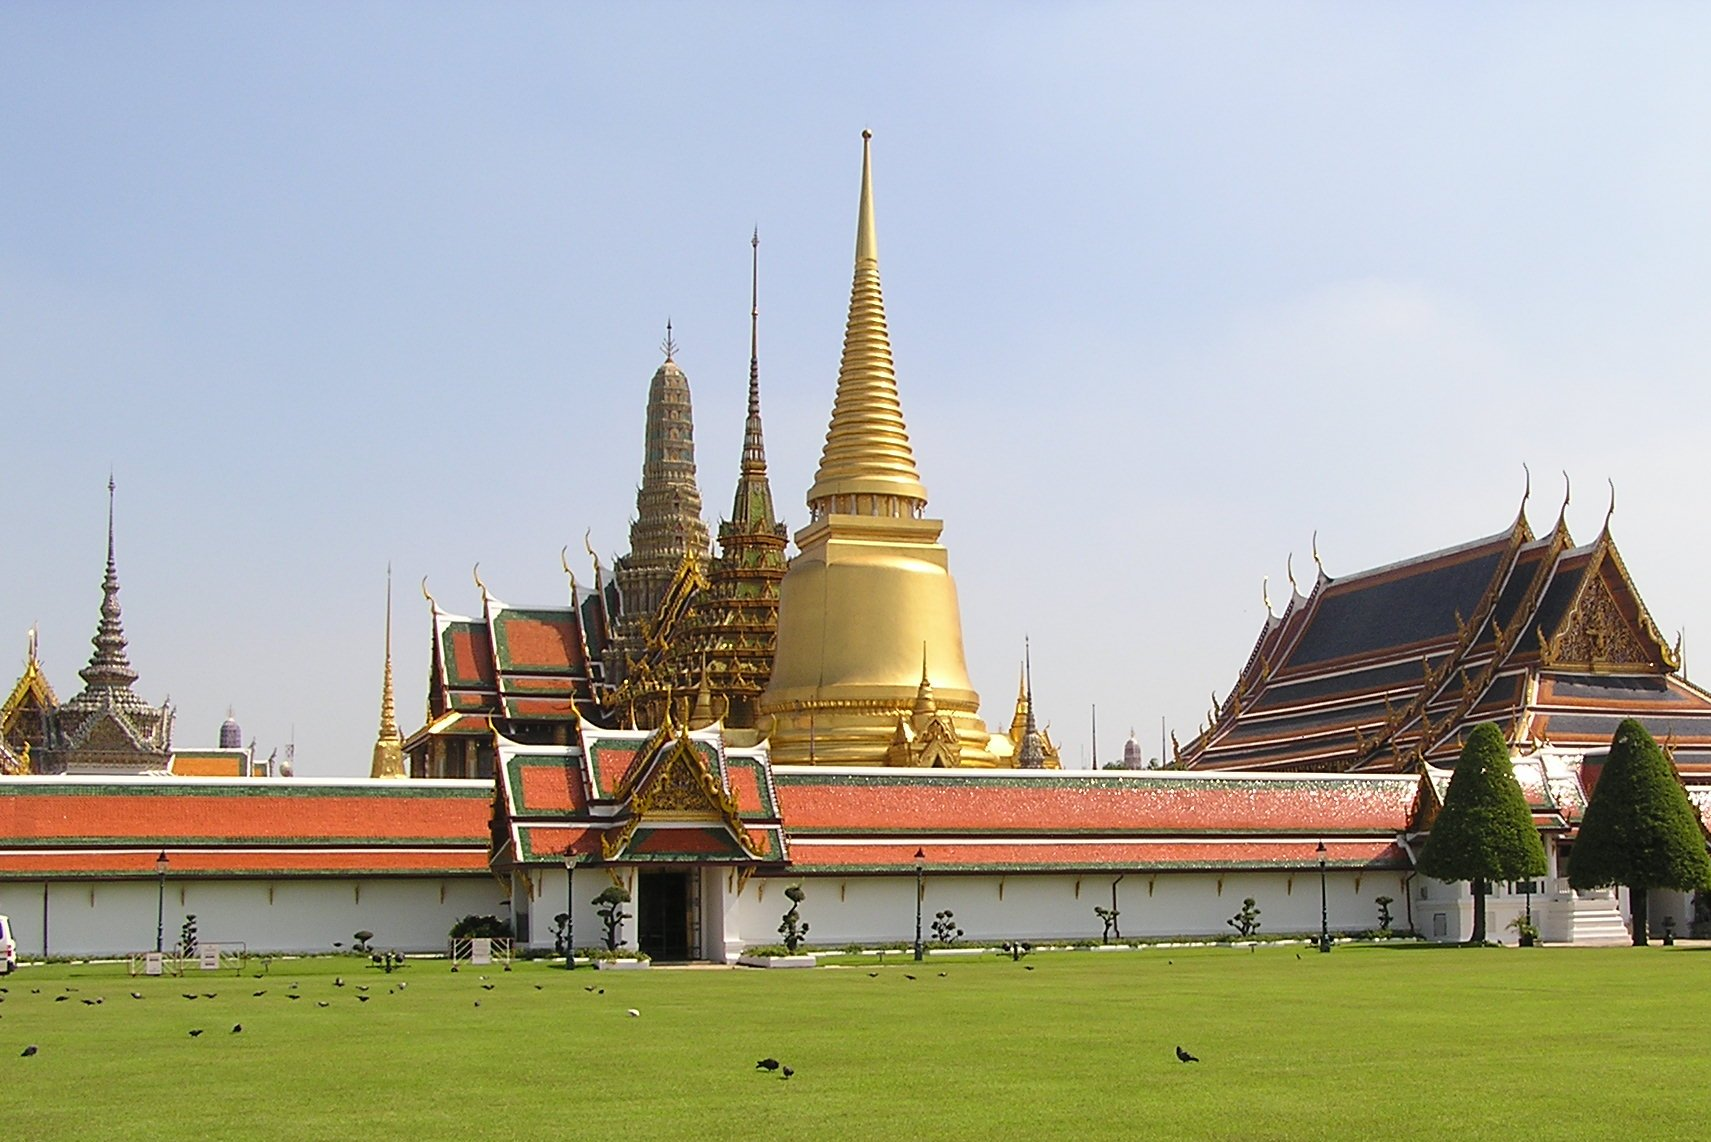 File:Grand Palace Bangkok.jpg - Wikipedia